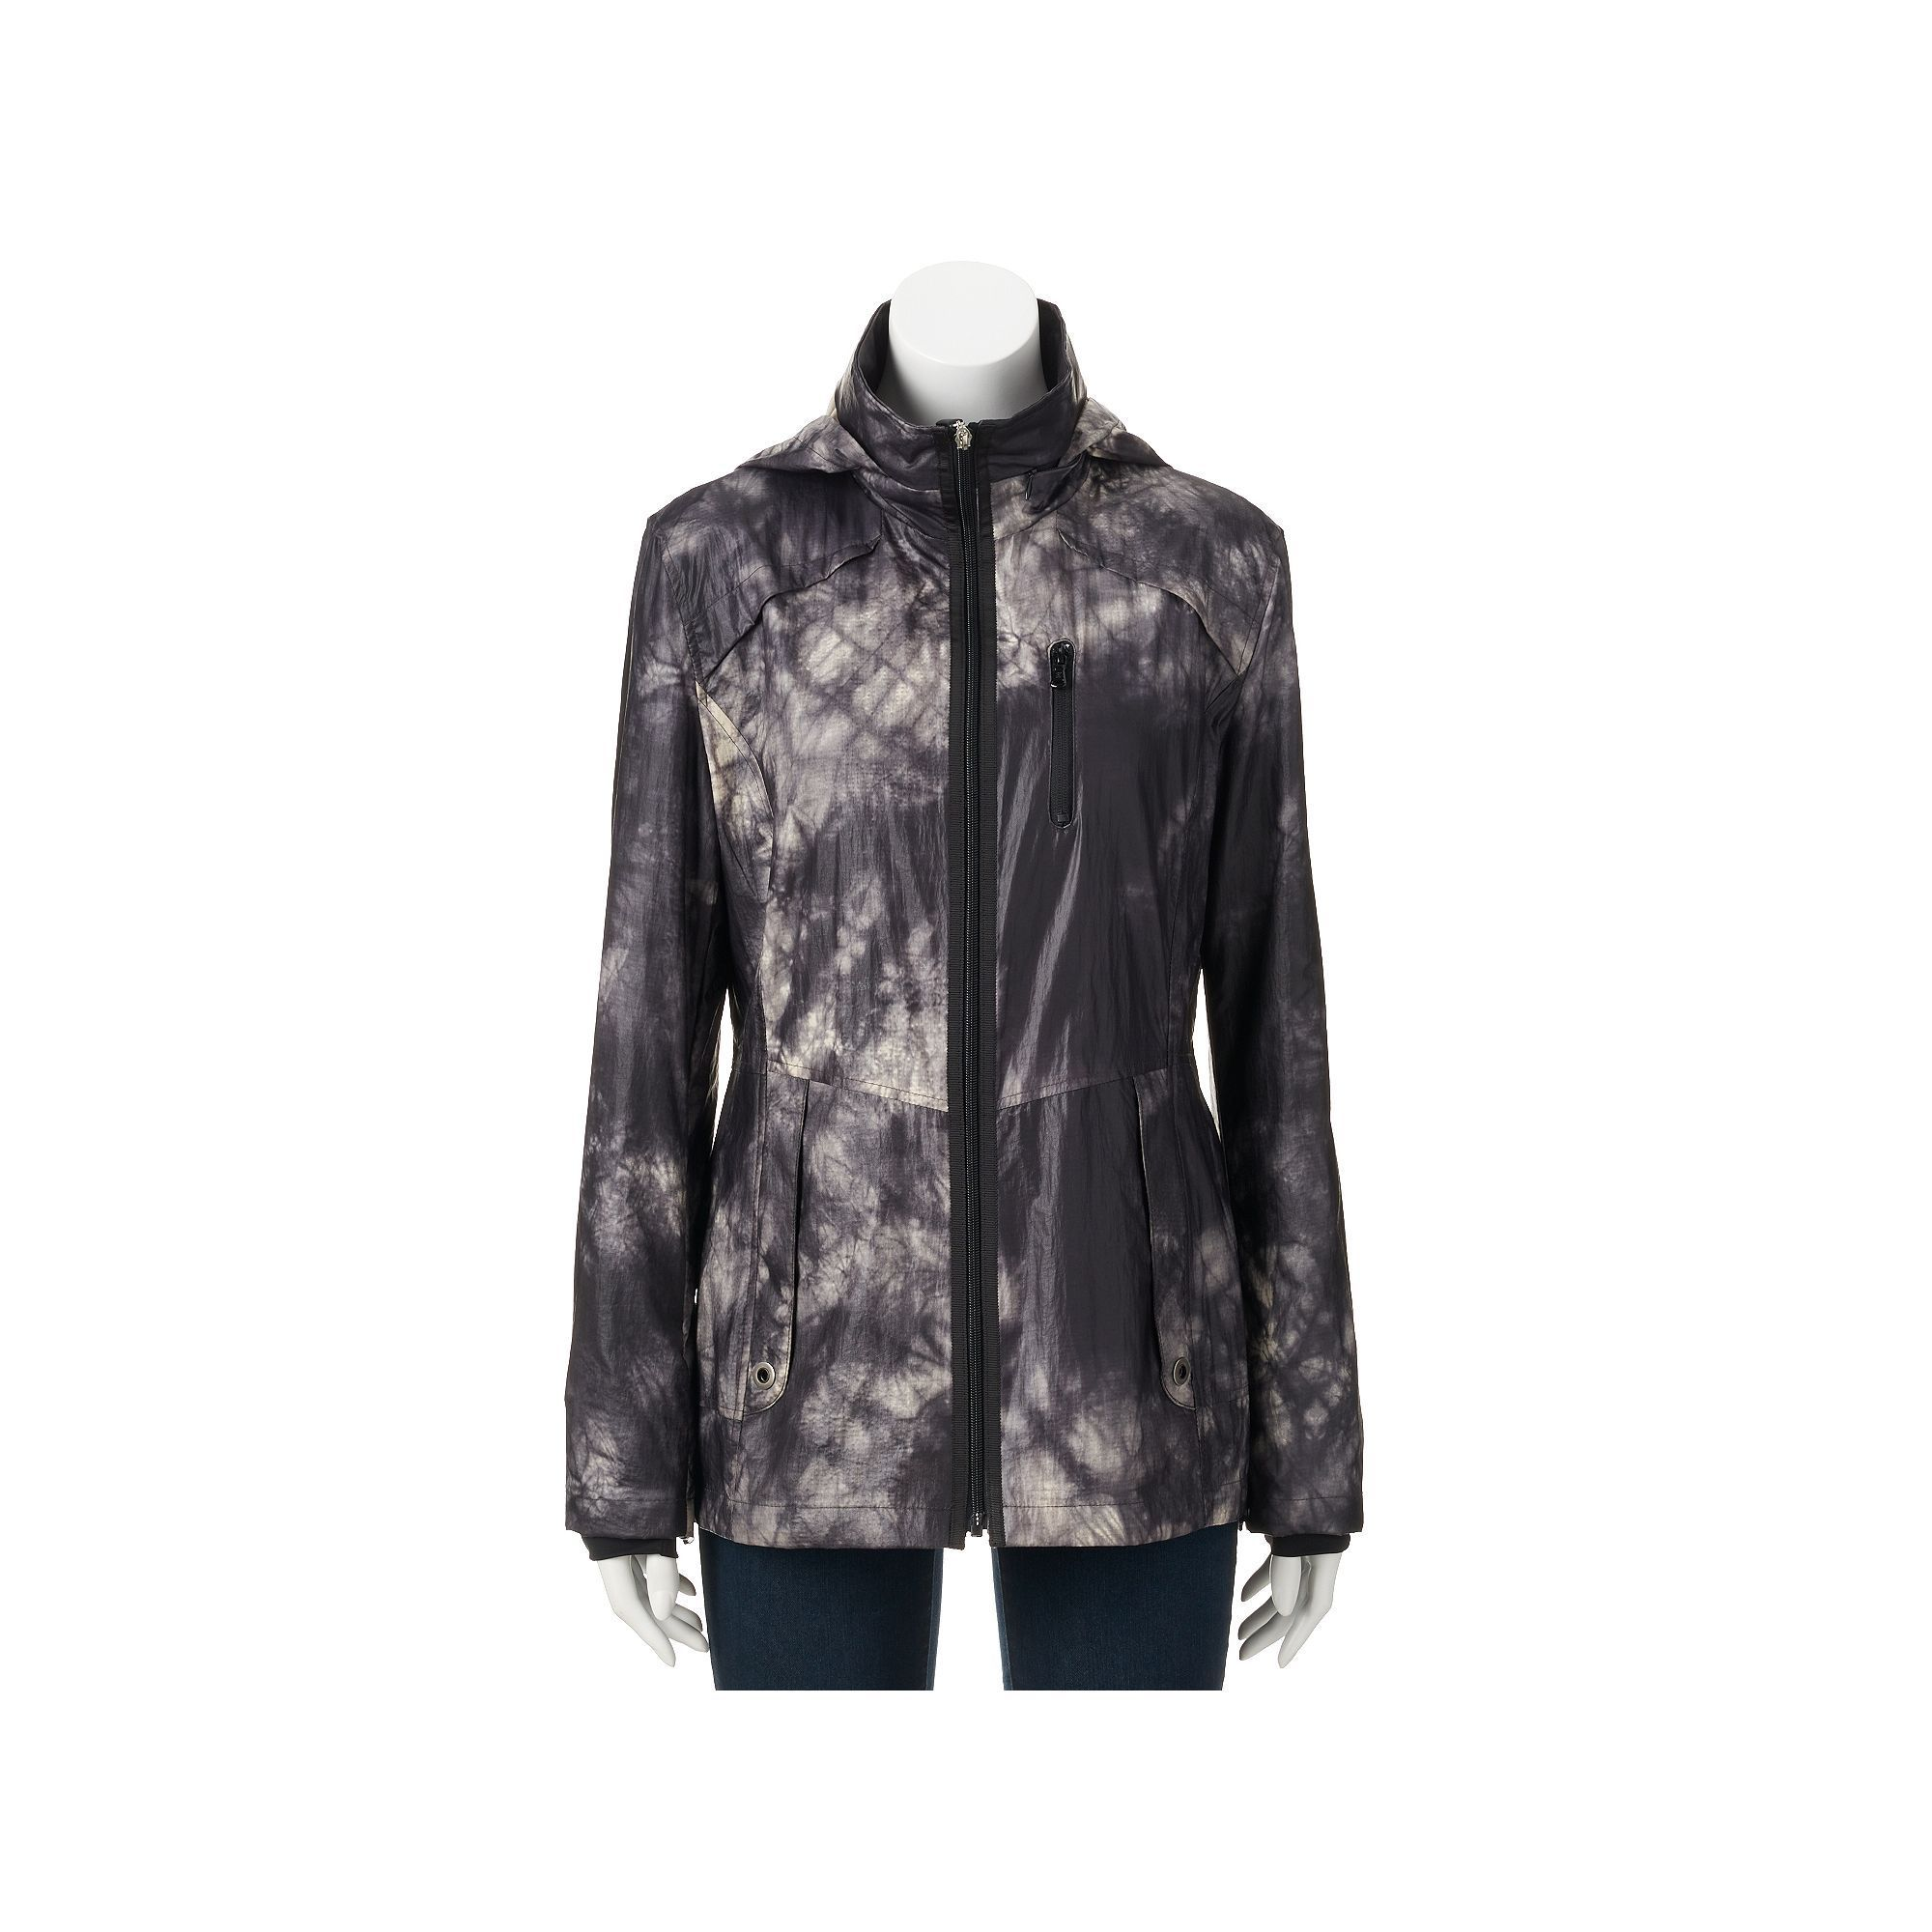 Women's Halifax Tie-Dye Jacket, Size: Medium, Grey (Charcoal)